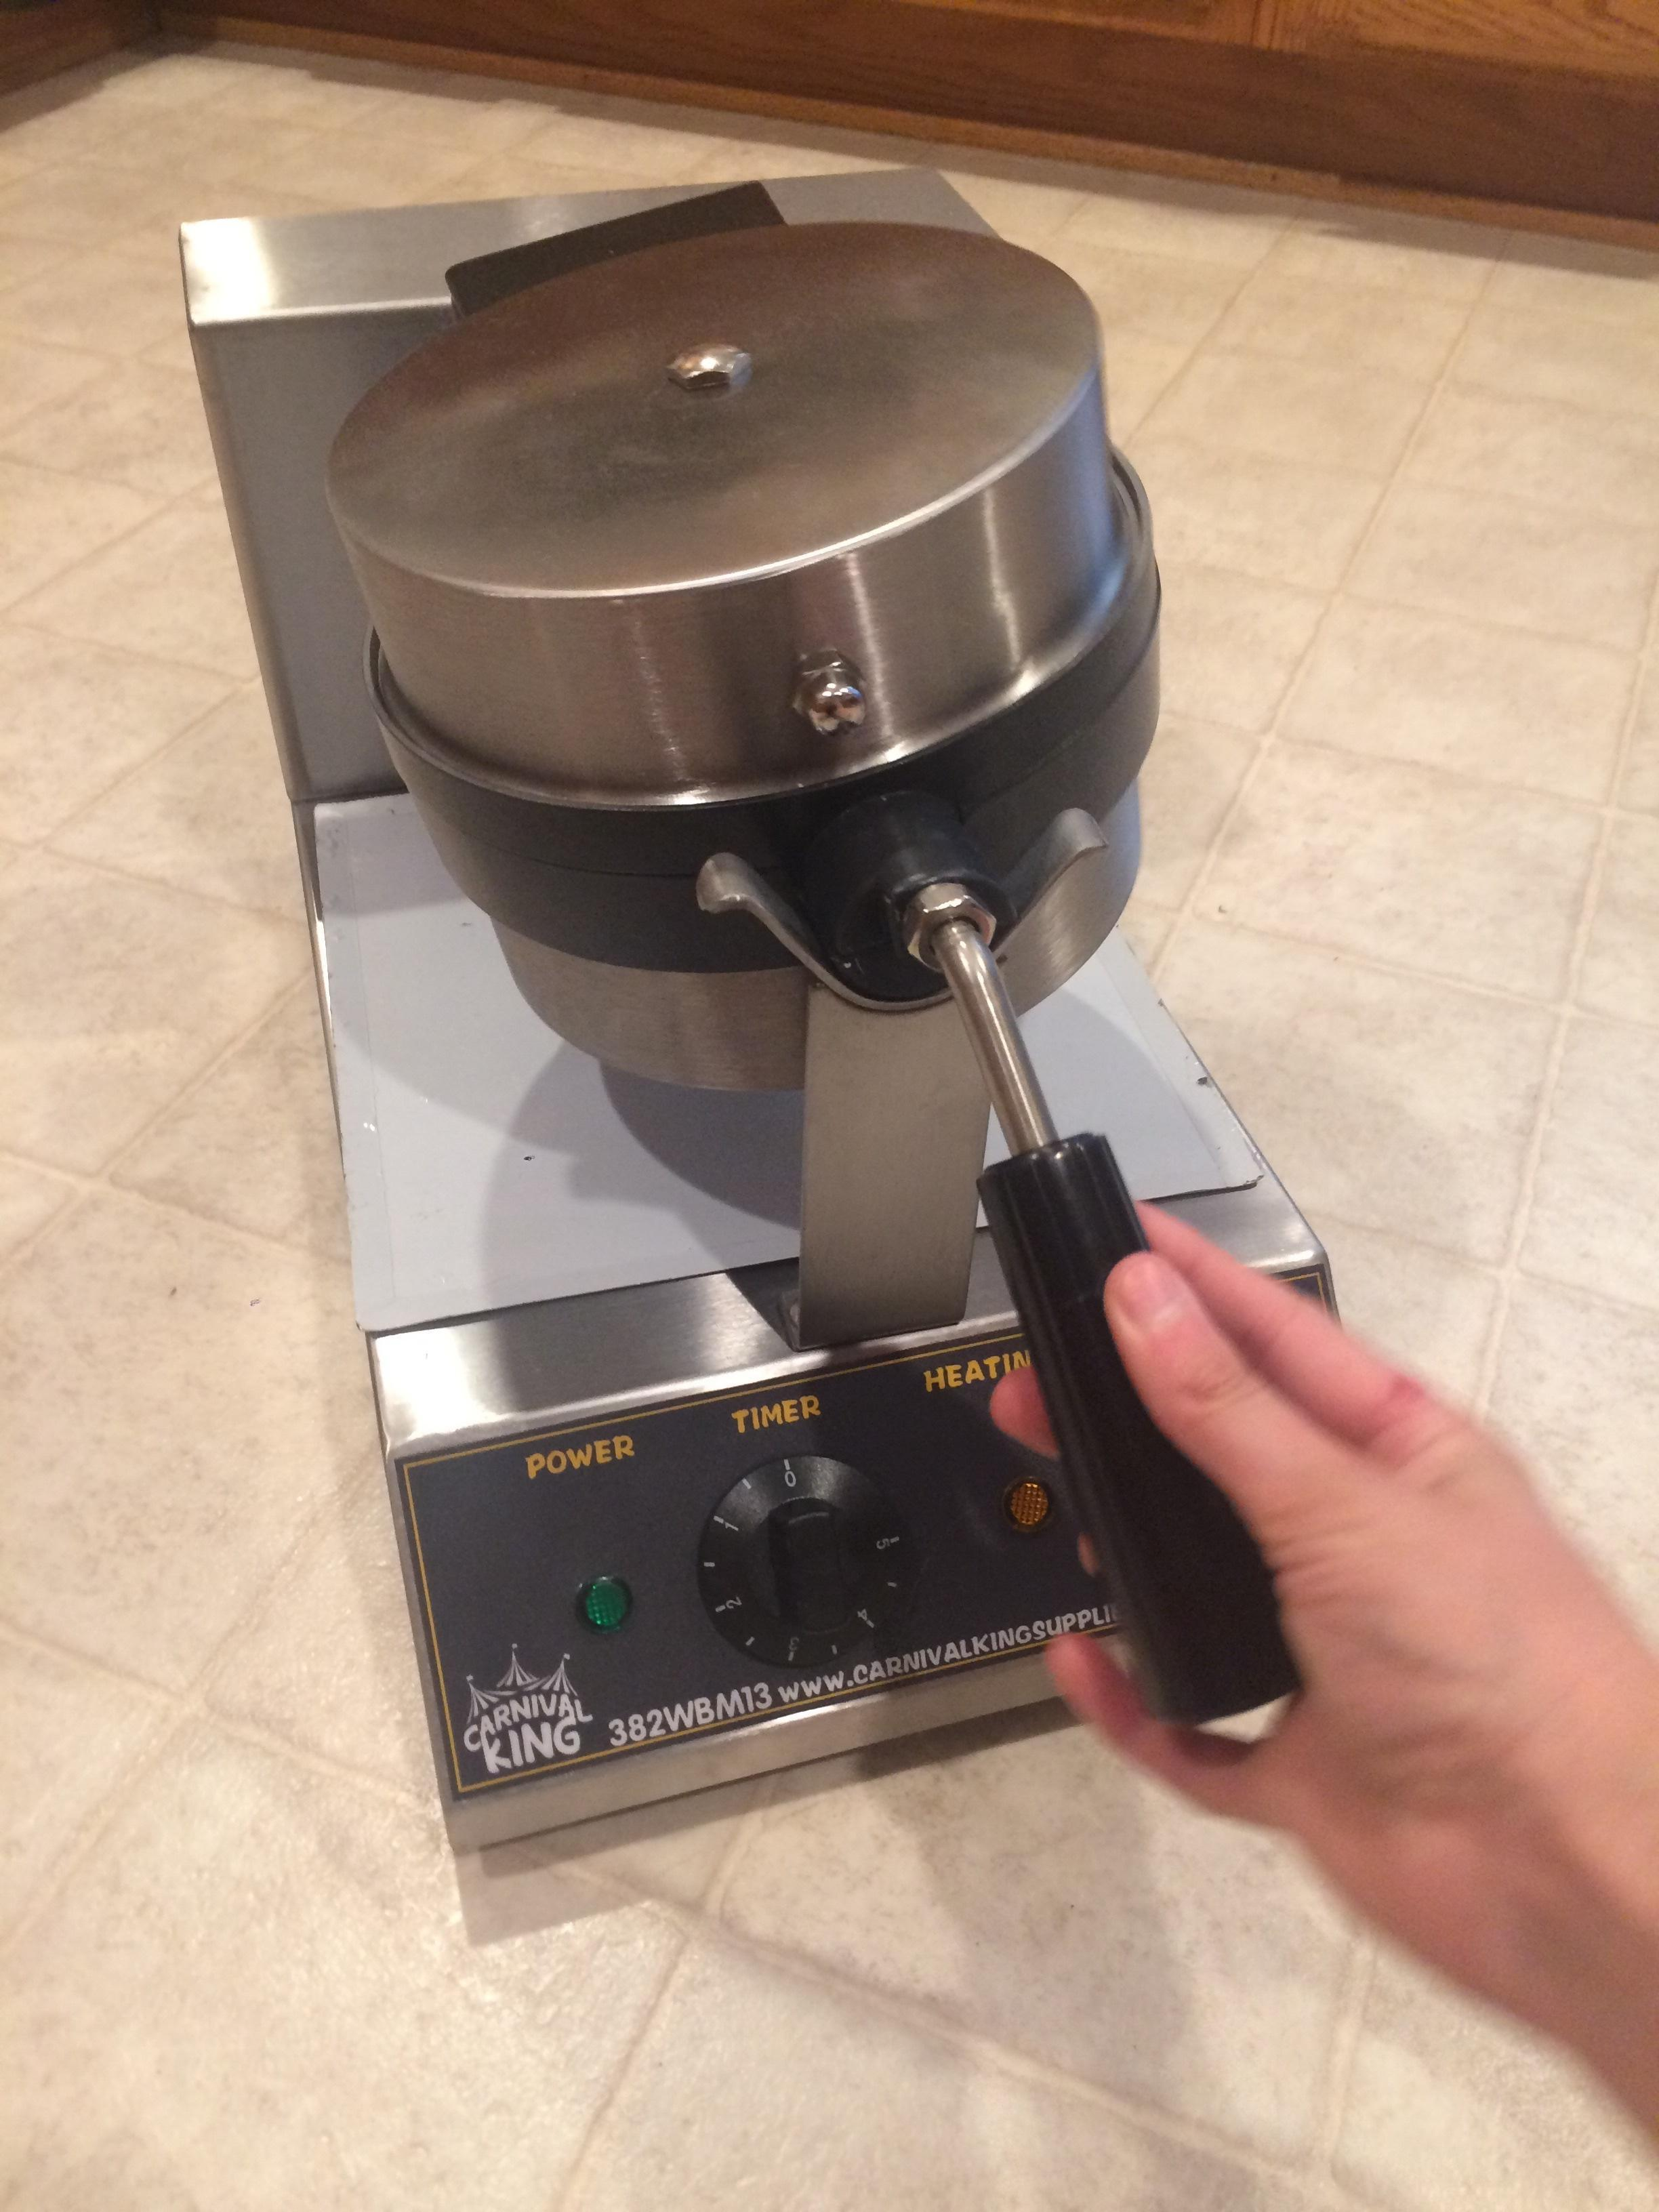 Carnival King Wbm13 Non Stick Belgian Waffle Maker With Timer 120v Electric Schematic Jam And Jelly Diagram Image